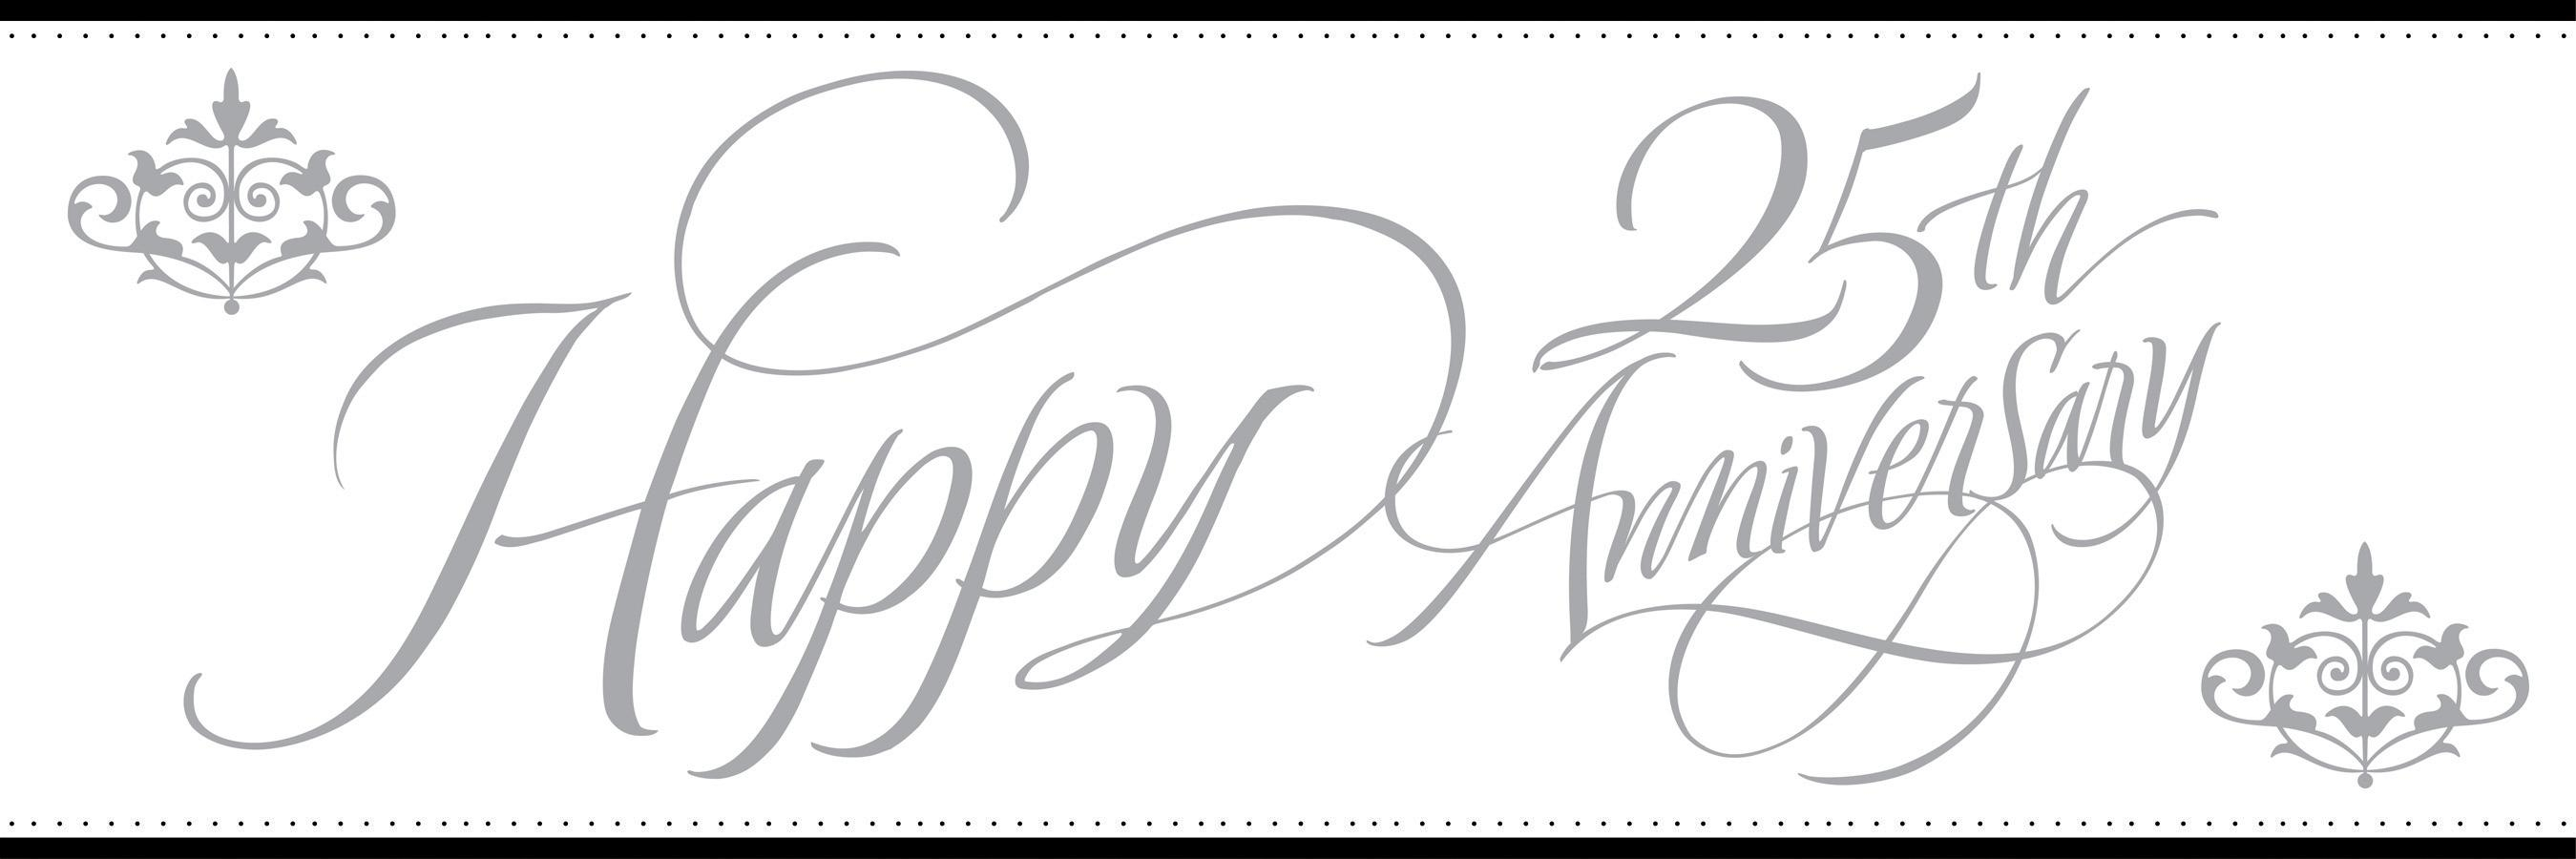 Happy 25th anniversary clipart picture royalty free Silver wedding anniversary clipart - ClipartFest picture royalty free